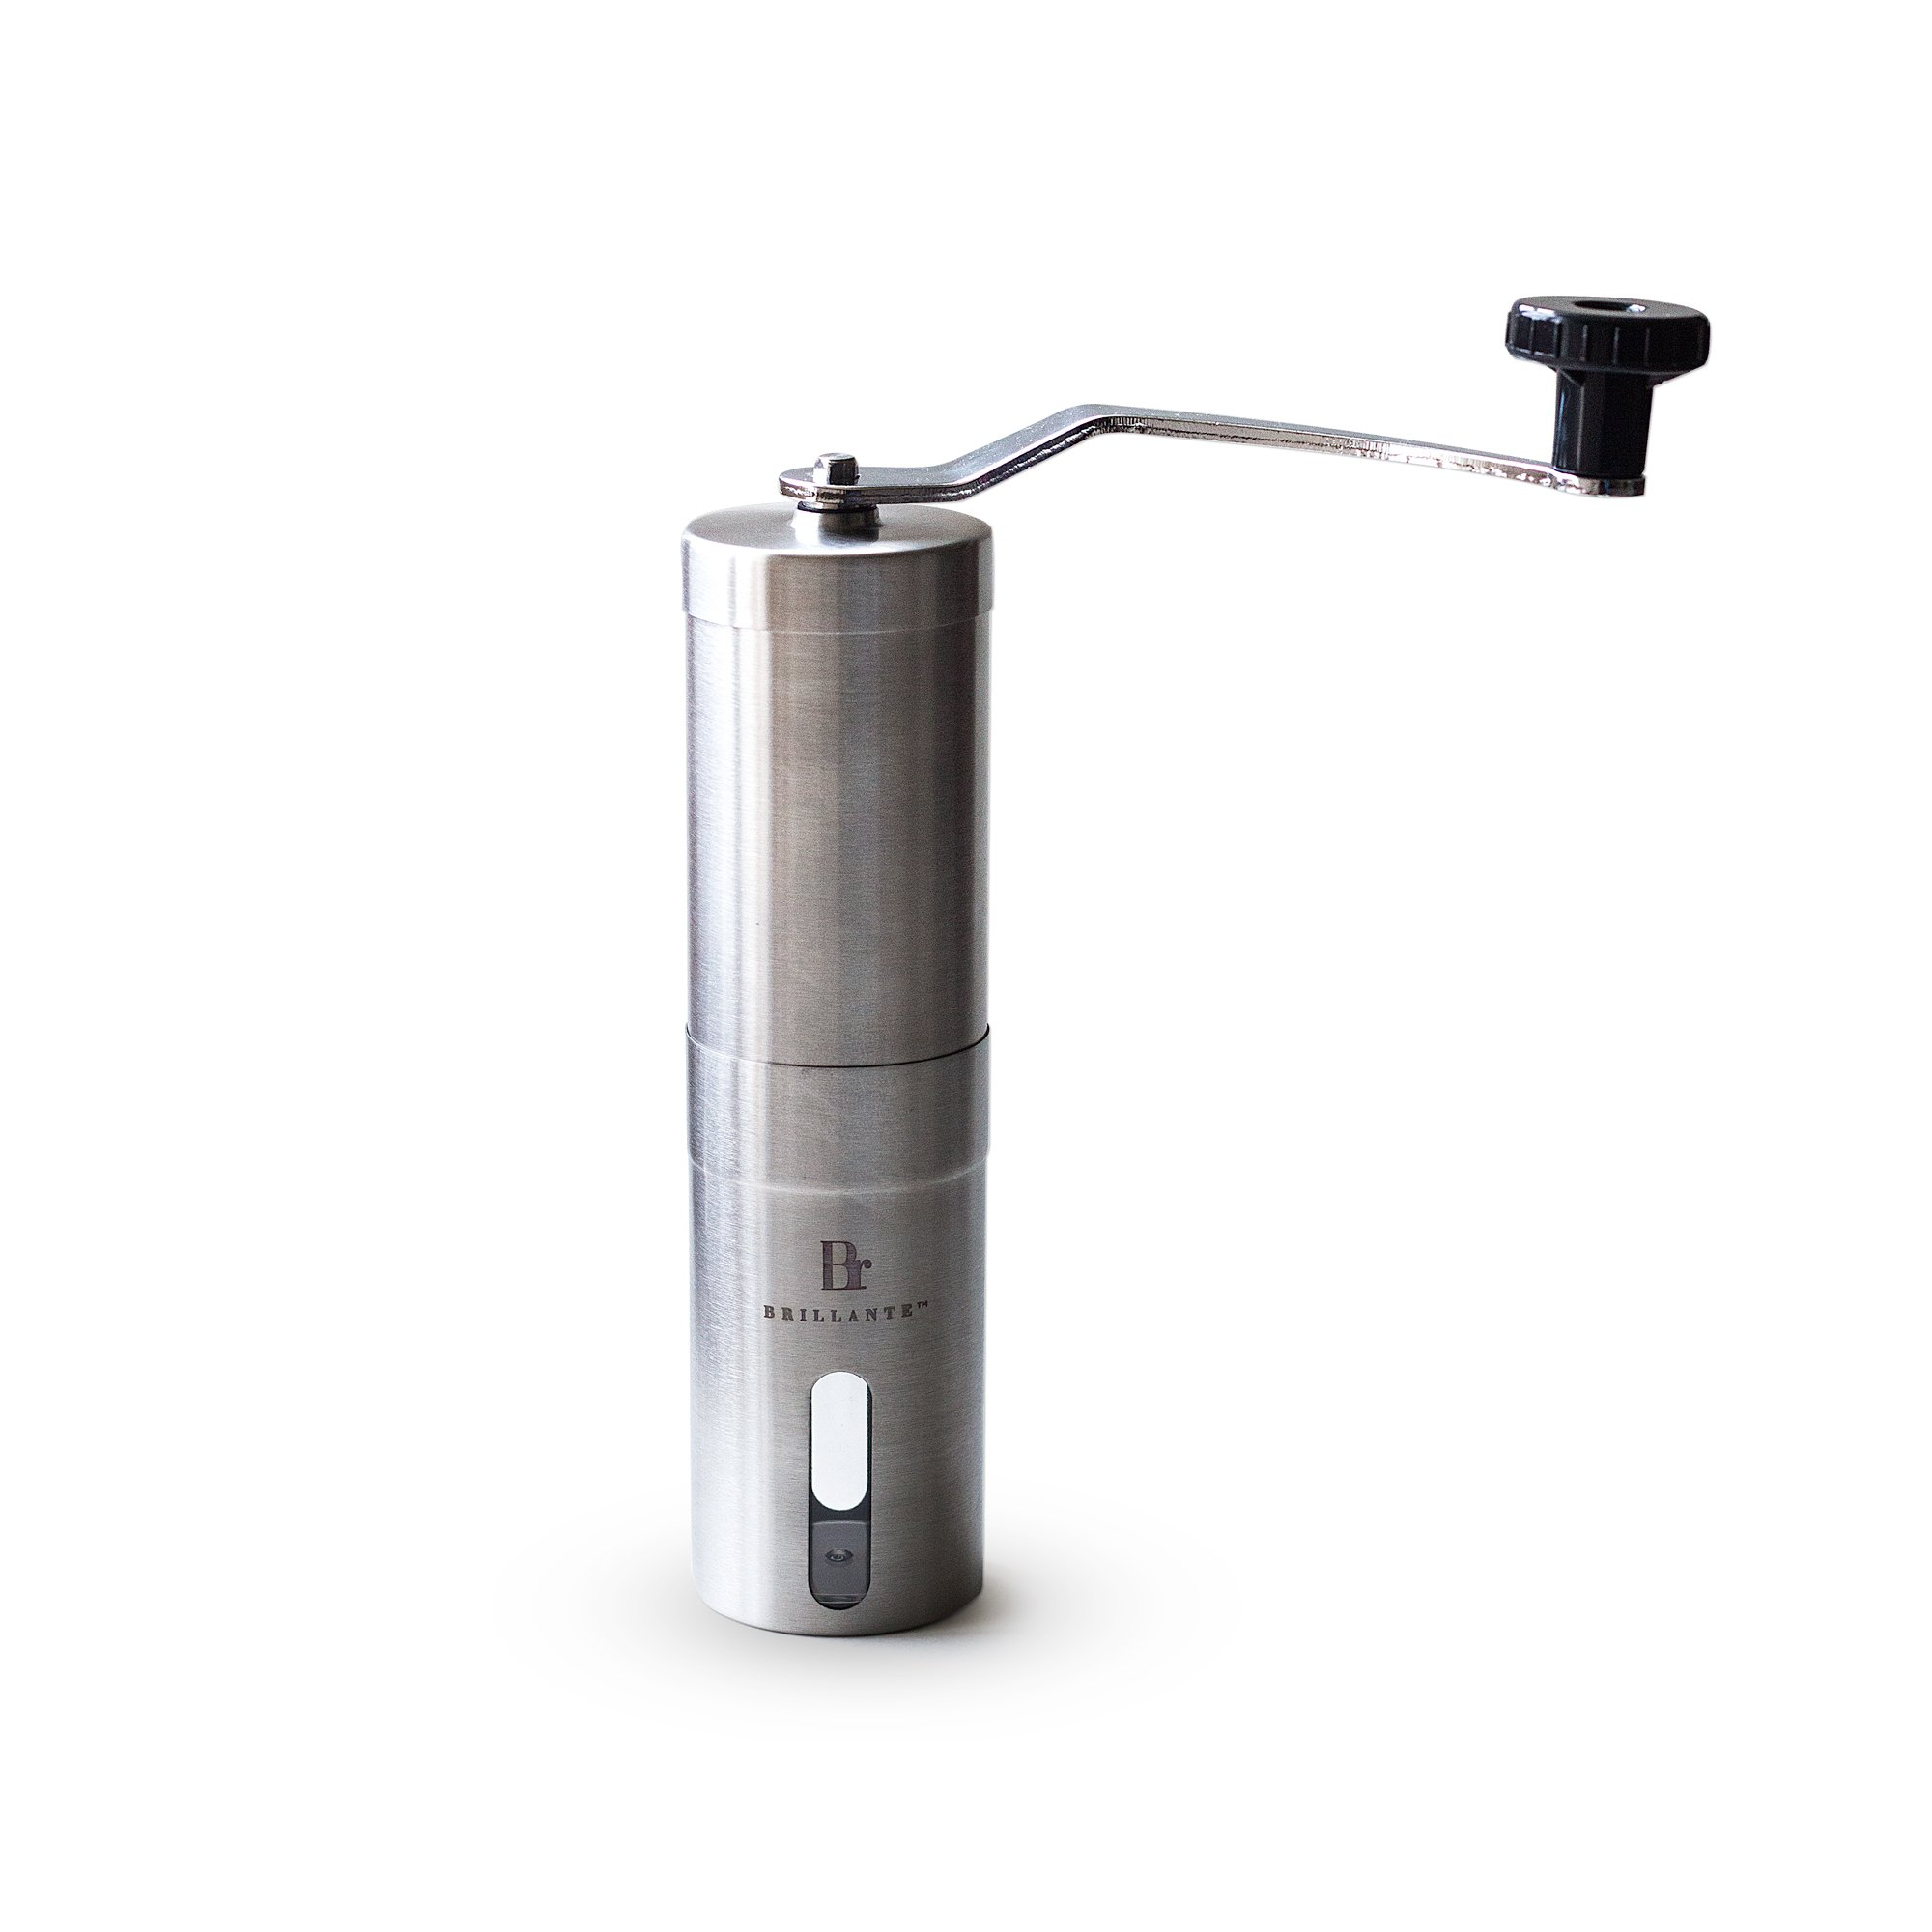 Brillante Manual Coffee Grinder - Superior Burr Design for Consistently Brewing Espresso, Pour Over, French Press & Turkish Coffee - Hand Crank Mill with Adjustable Ceramic Conical Burr (BR-MCG-SS1)